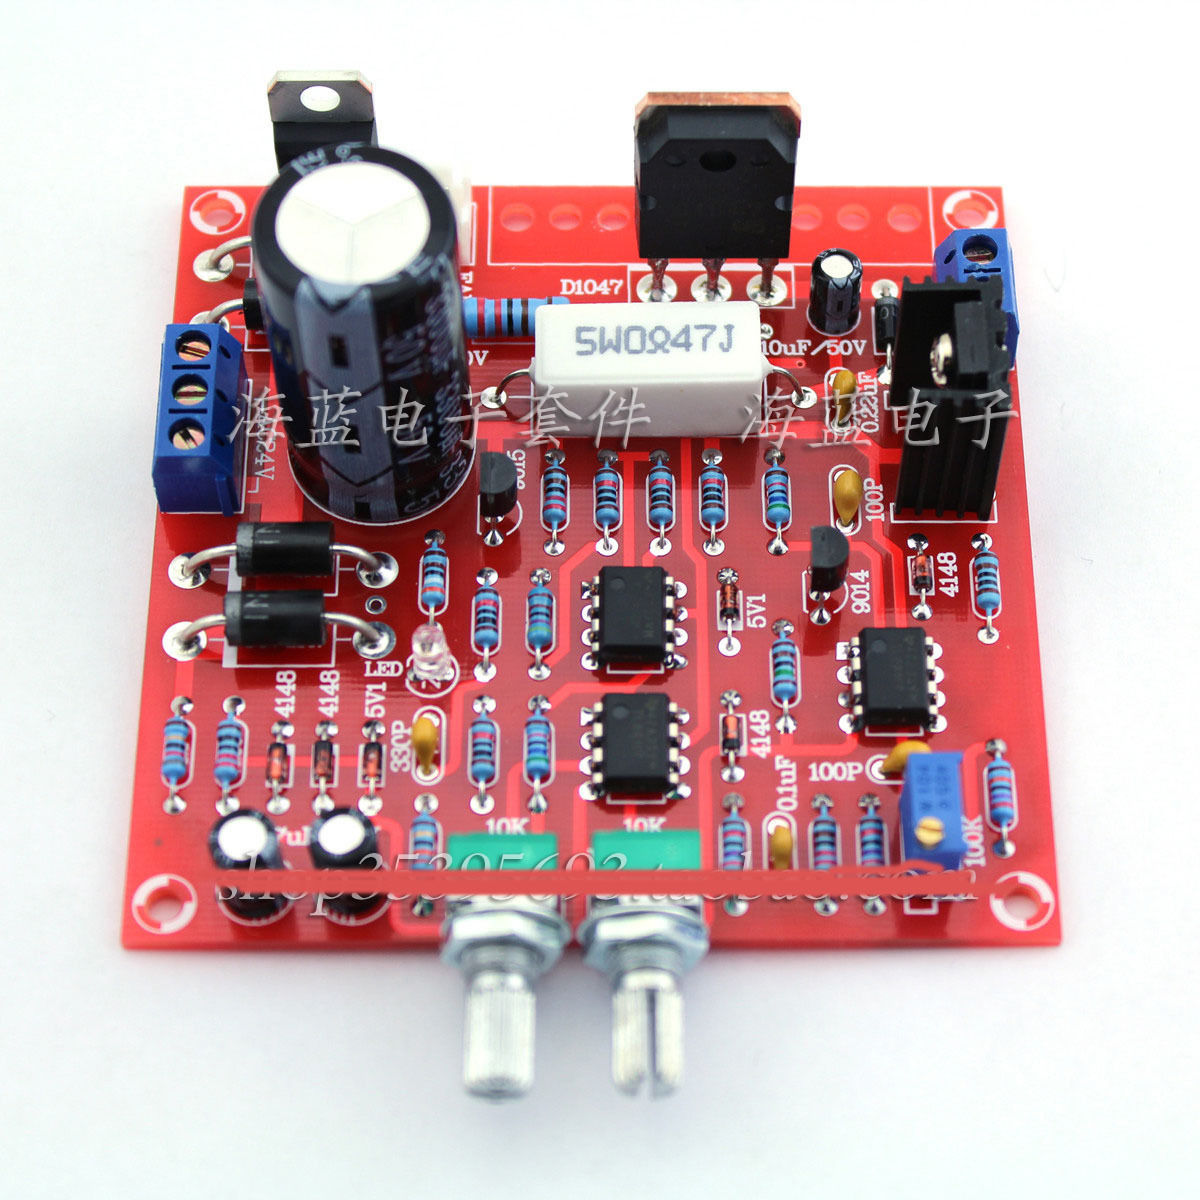 5v Regulated Power Supply With Overvoltage Protection Schematic